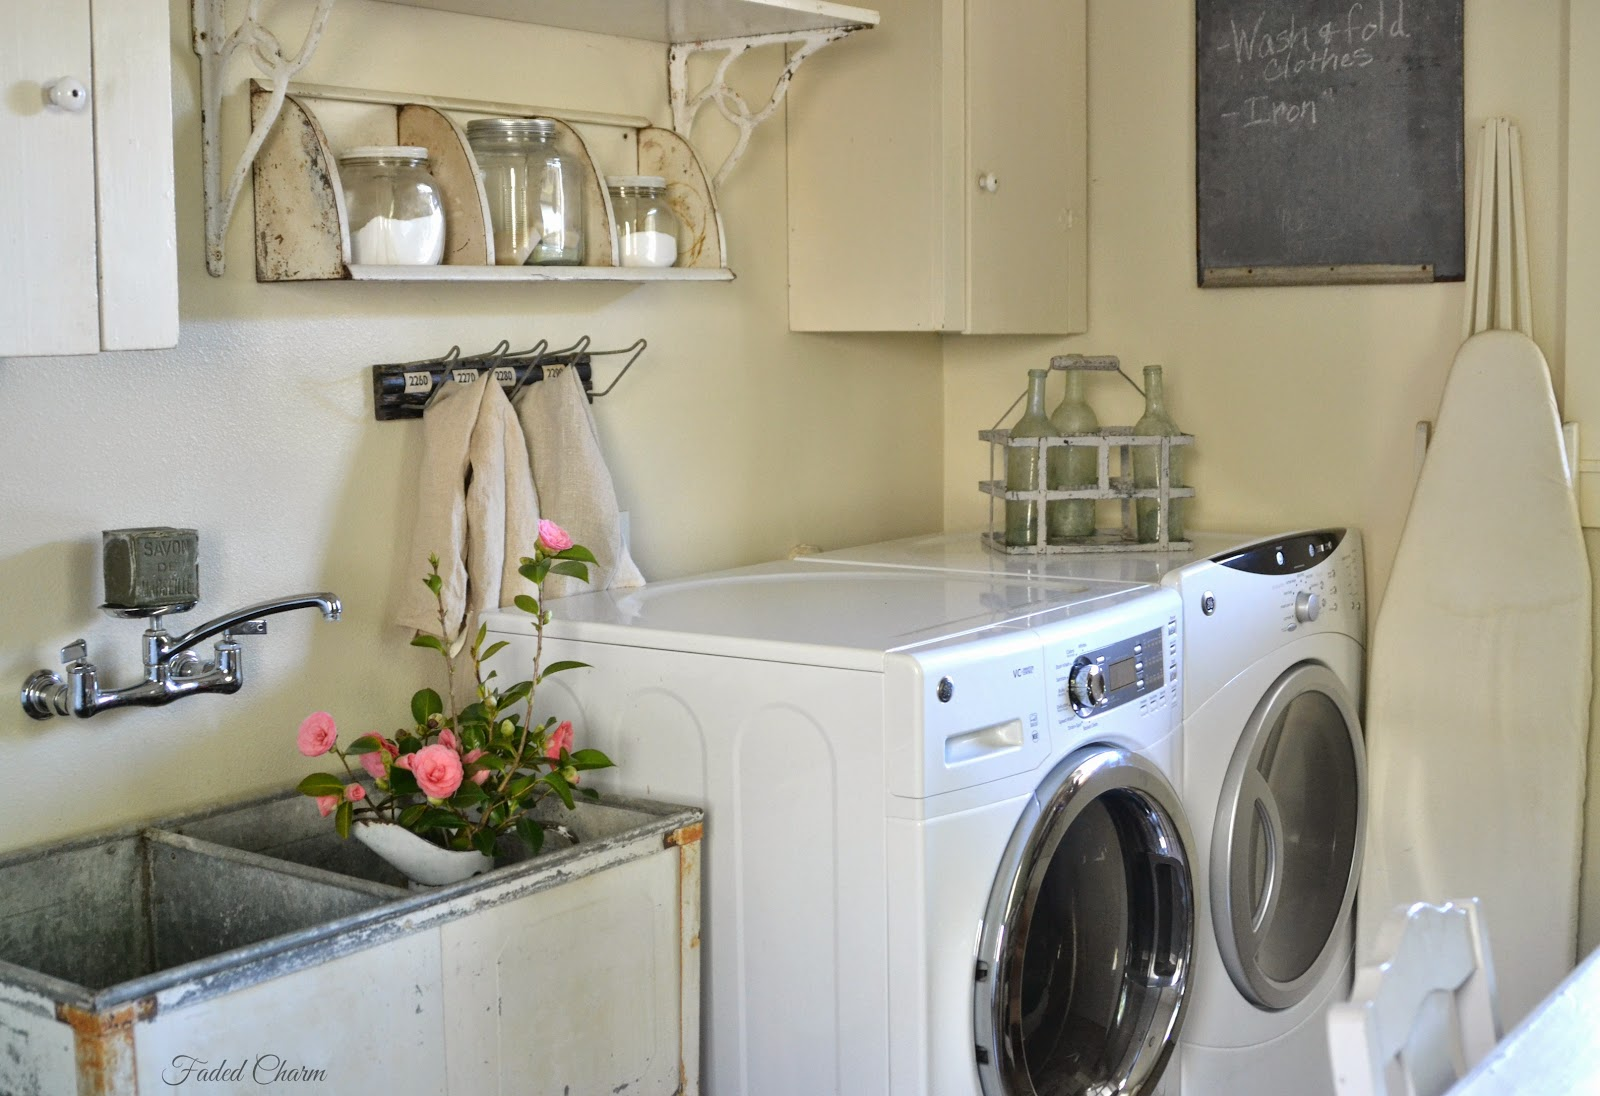 Vintage Laundry Room Alluring Faded Charm ~Laundry Room Essentials~ Inspiration